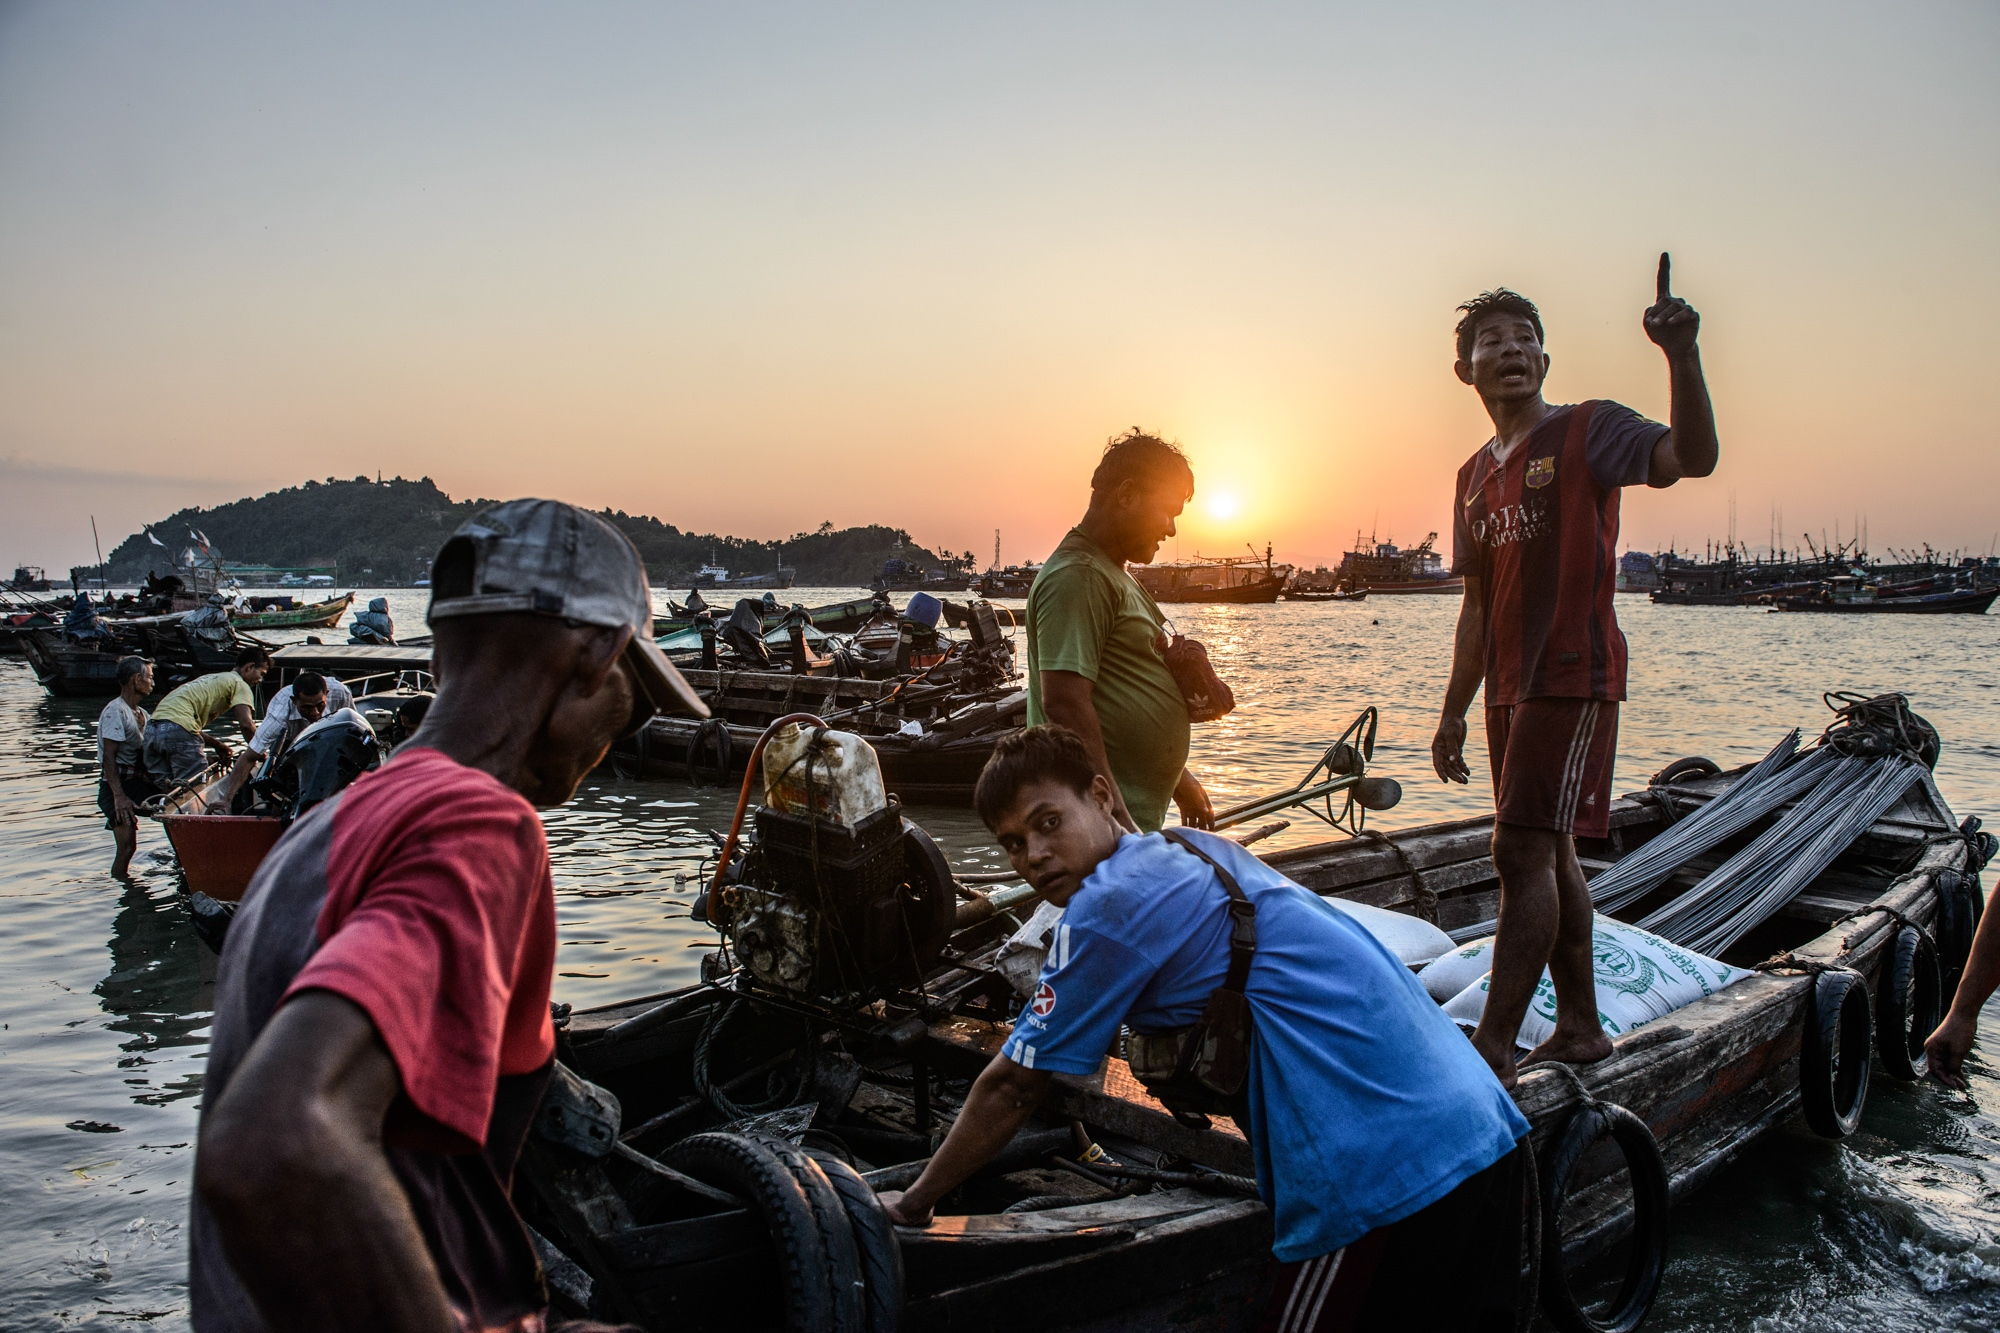 In Myeik, investors and business companies apply for Burma's Vacant, Fallow and Virgin Land Rights with the purpose of changing beaches and coastal areas into private areas. If succeed, livelihoods of the fishery communities who have already faced with overfishing to satisfy the demands of industrial-scale coastal fishing operators and will not be permissible and will become obsolete to fish from beaches and provide a loss of income at the coastal areas. Consequently, The local fisherman will endure a loss of income and create a hardship for them to make a living.